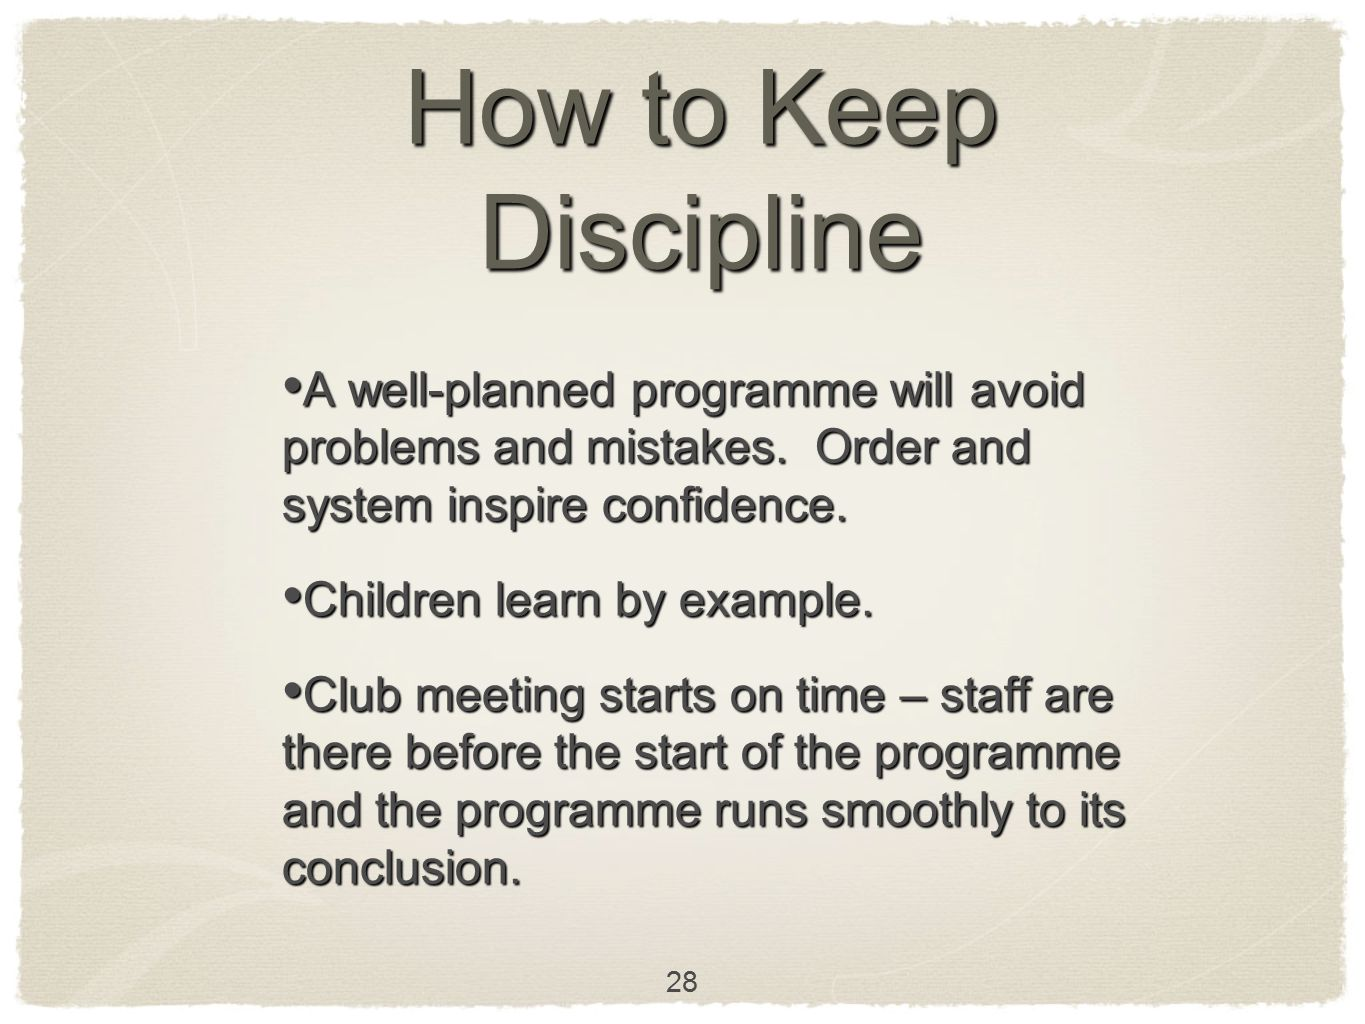 How to Keep Discipline A well-planned programme will avoid problems and mistakes. Order and system inspire confidence.